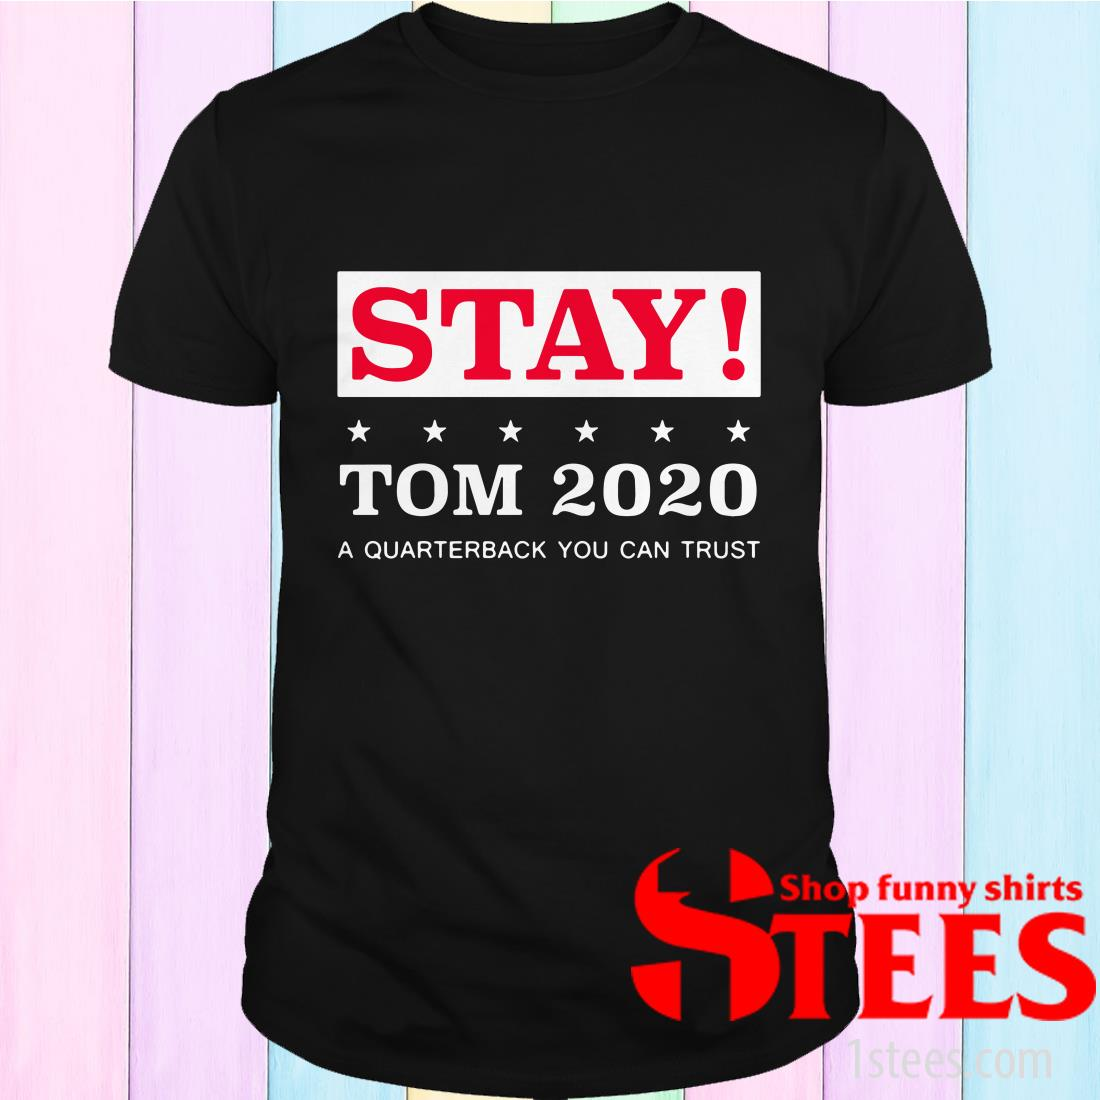 Stay Tom 2020 A Quarterback You Can Trust Shirt